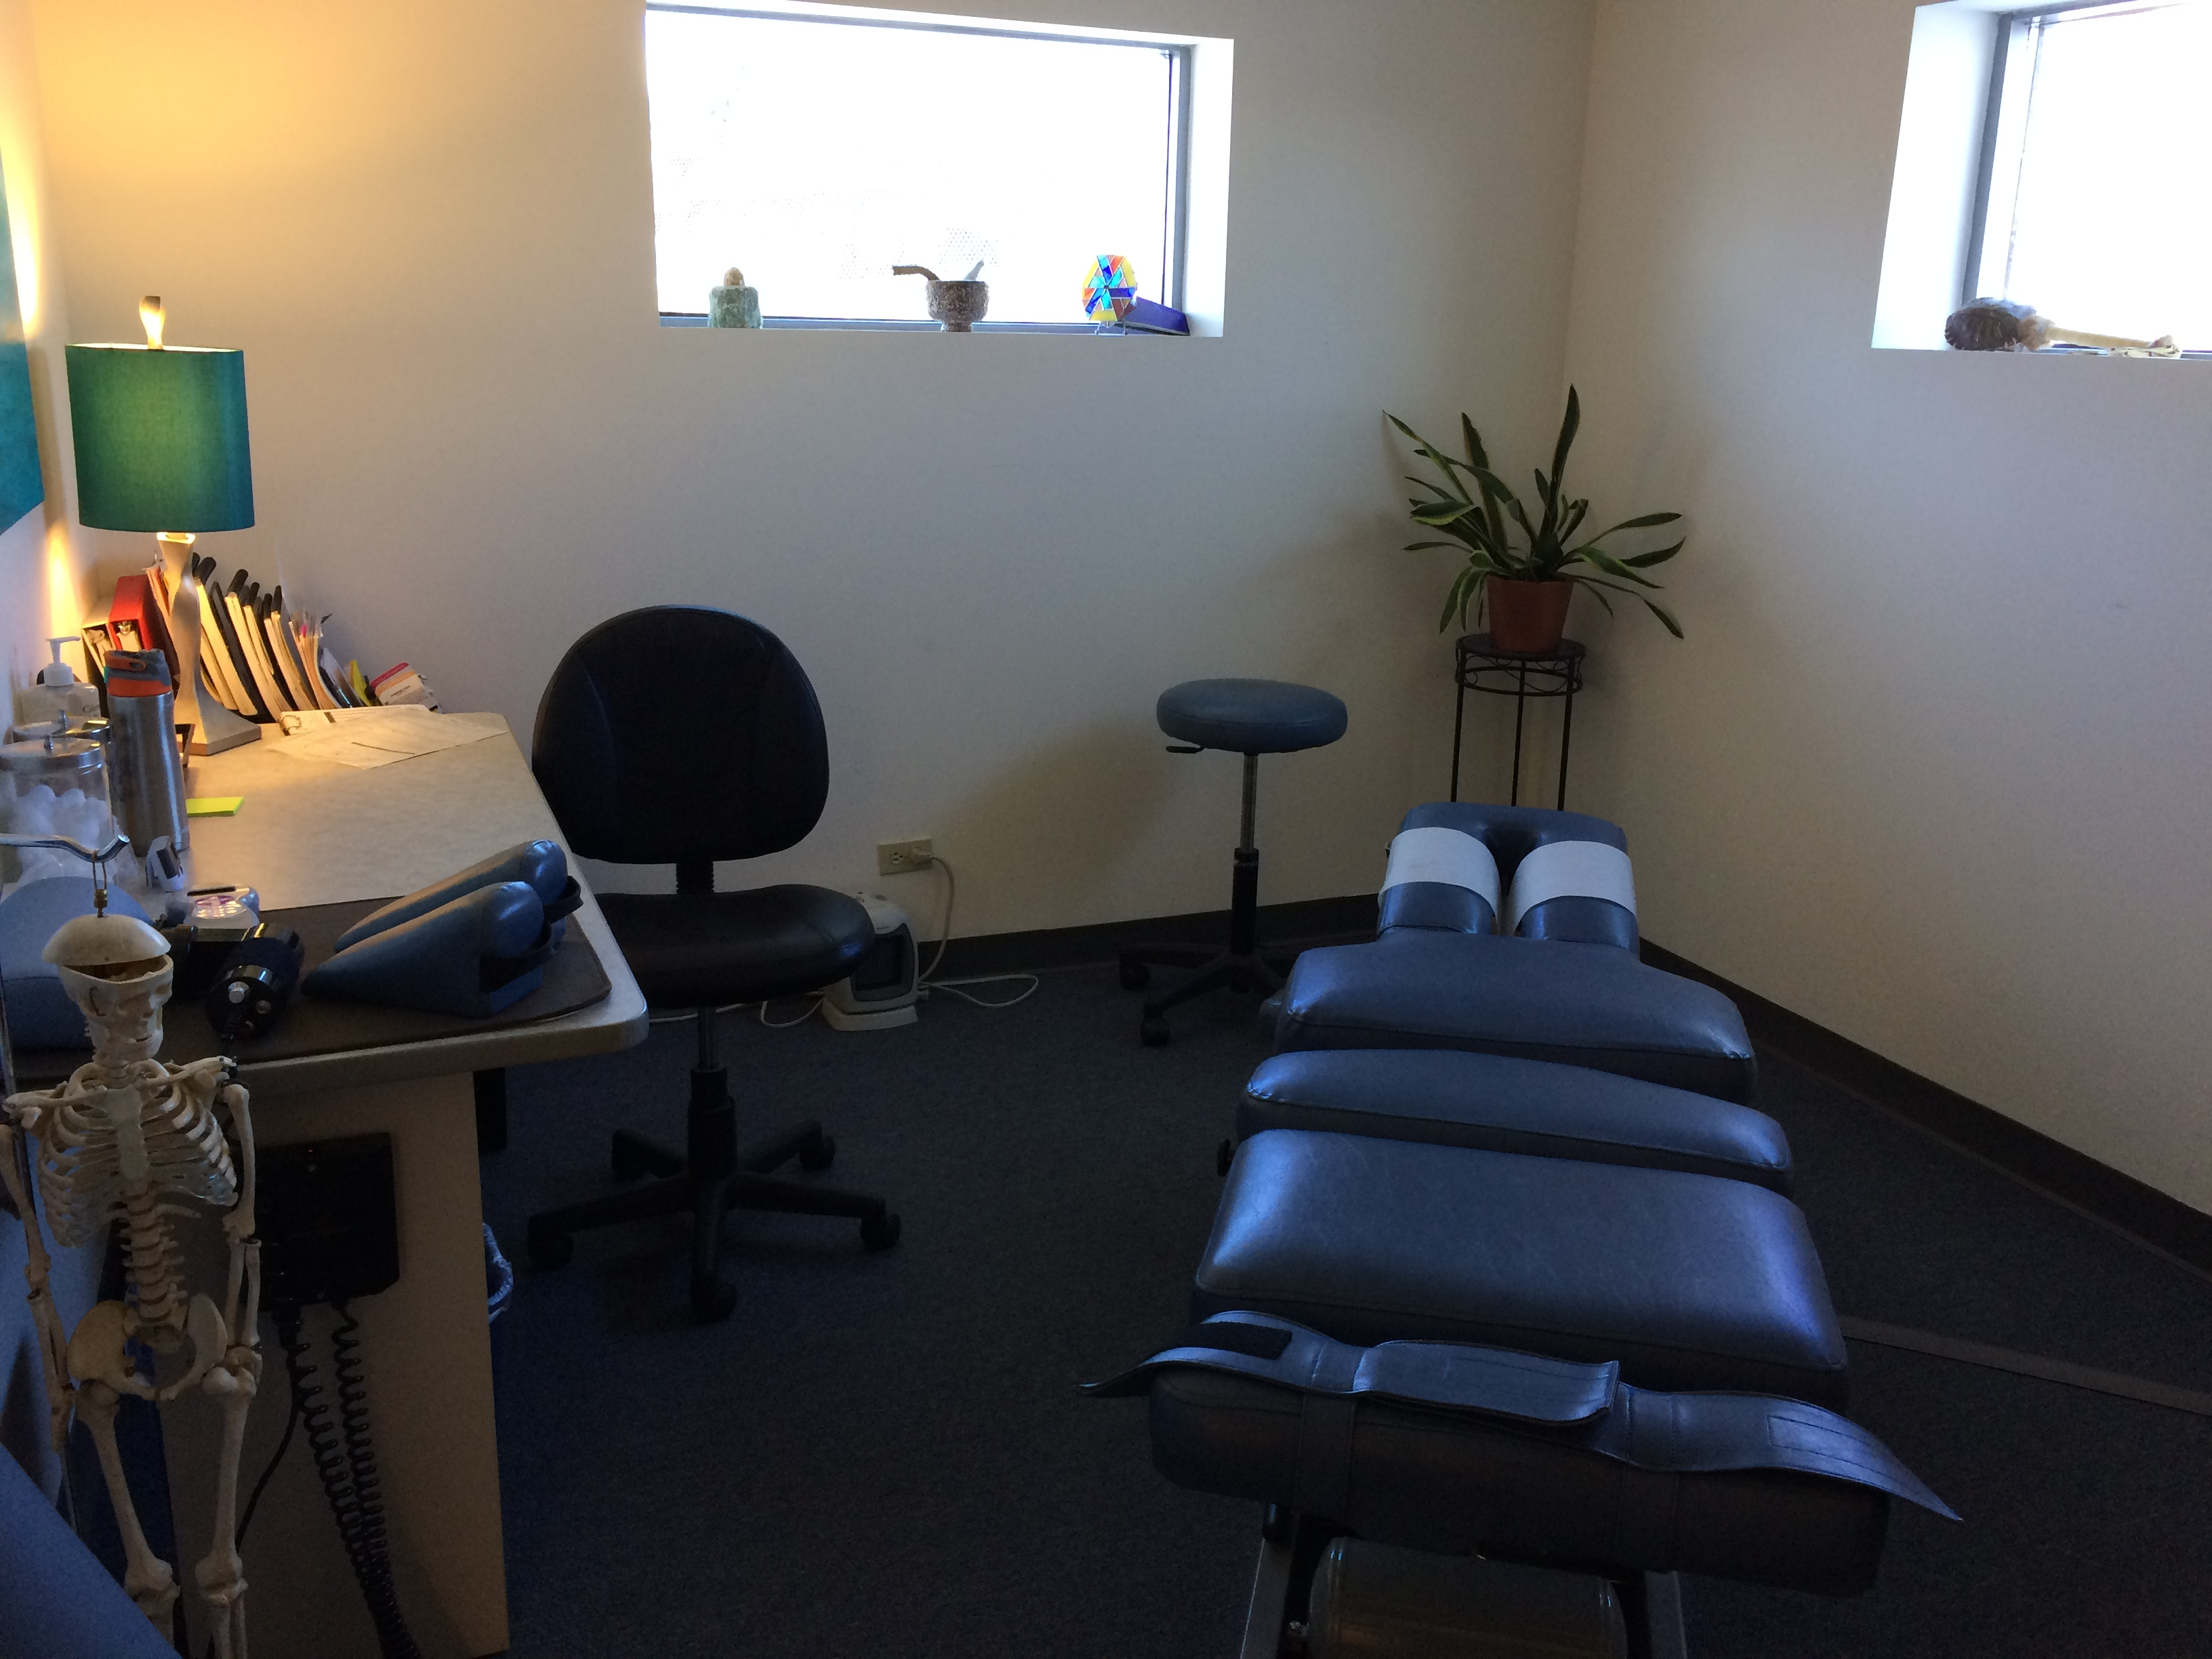 Dr. Akers Natural Health Clinic image 6